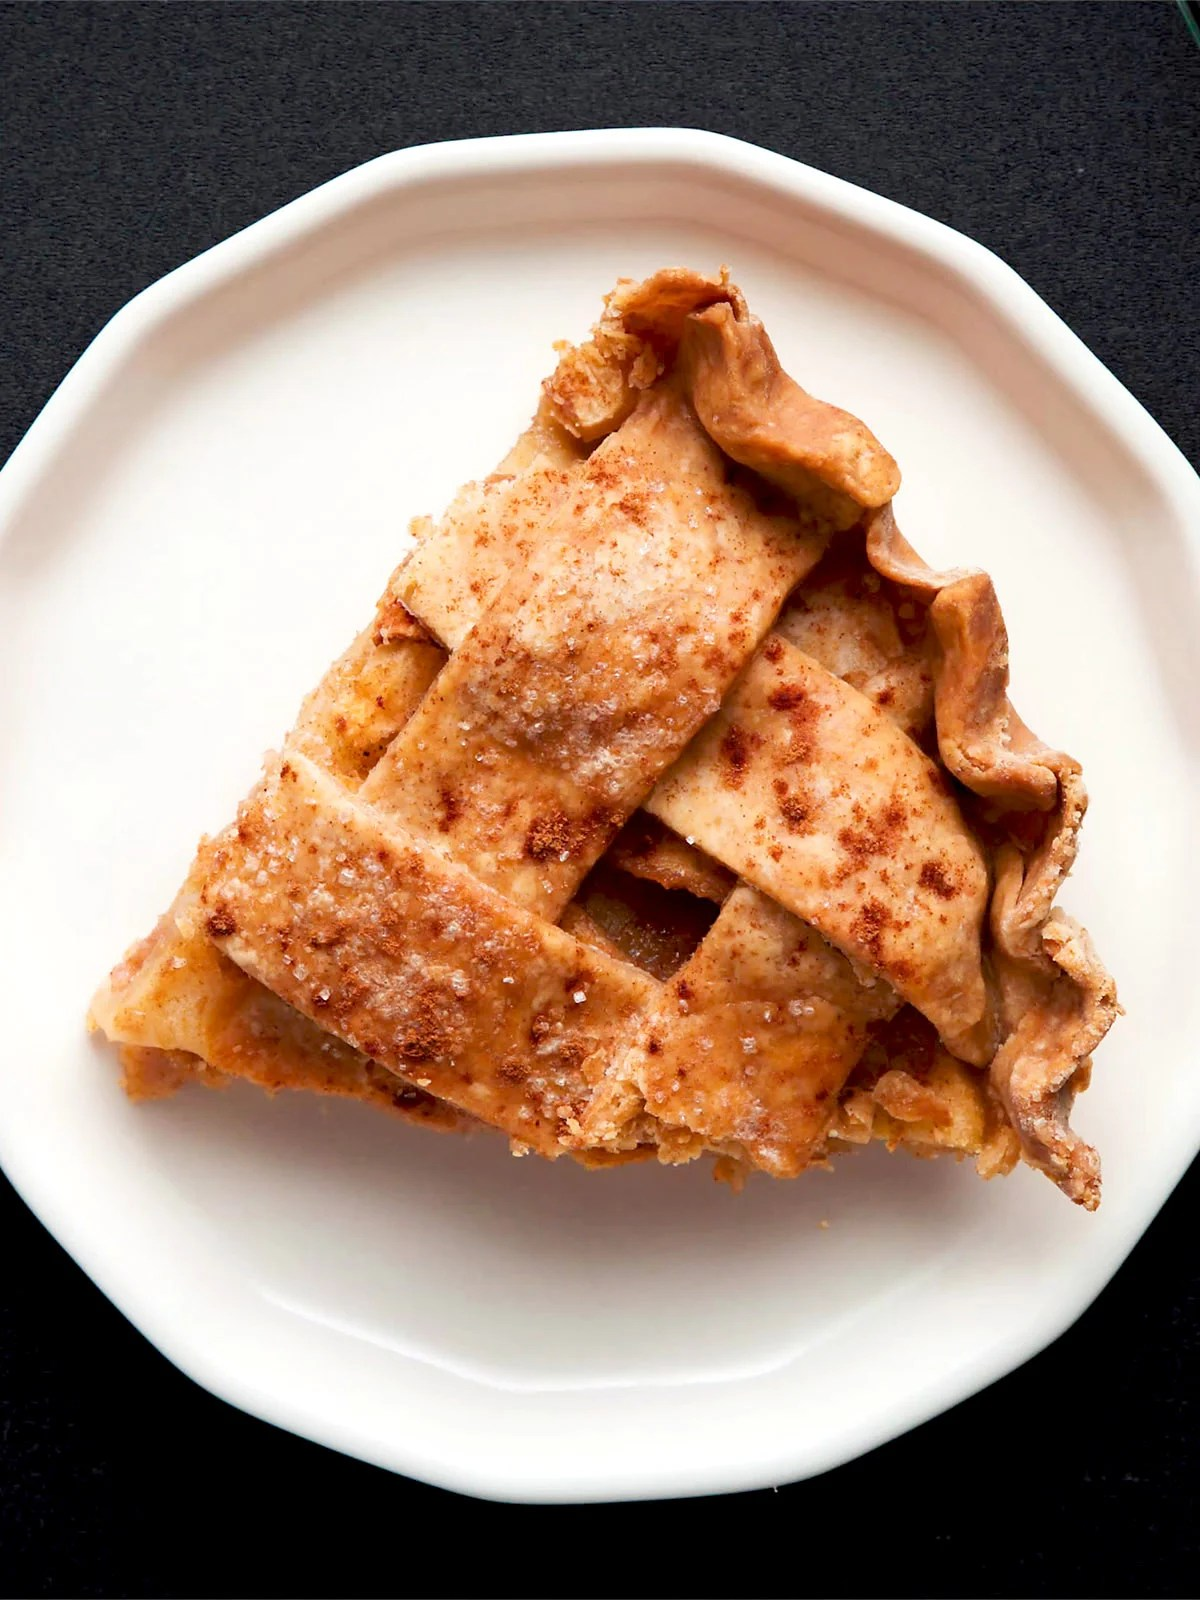 a triangular wedge of apple pie on an off-white plate